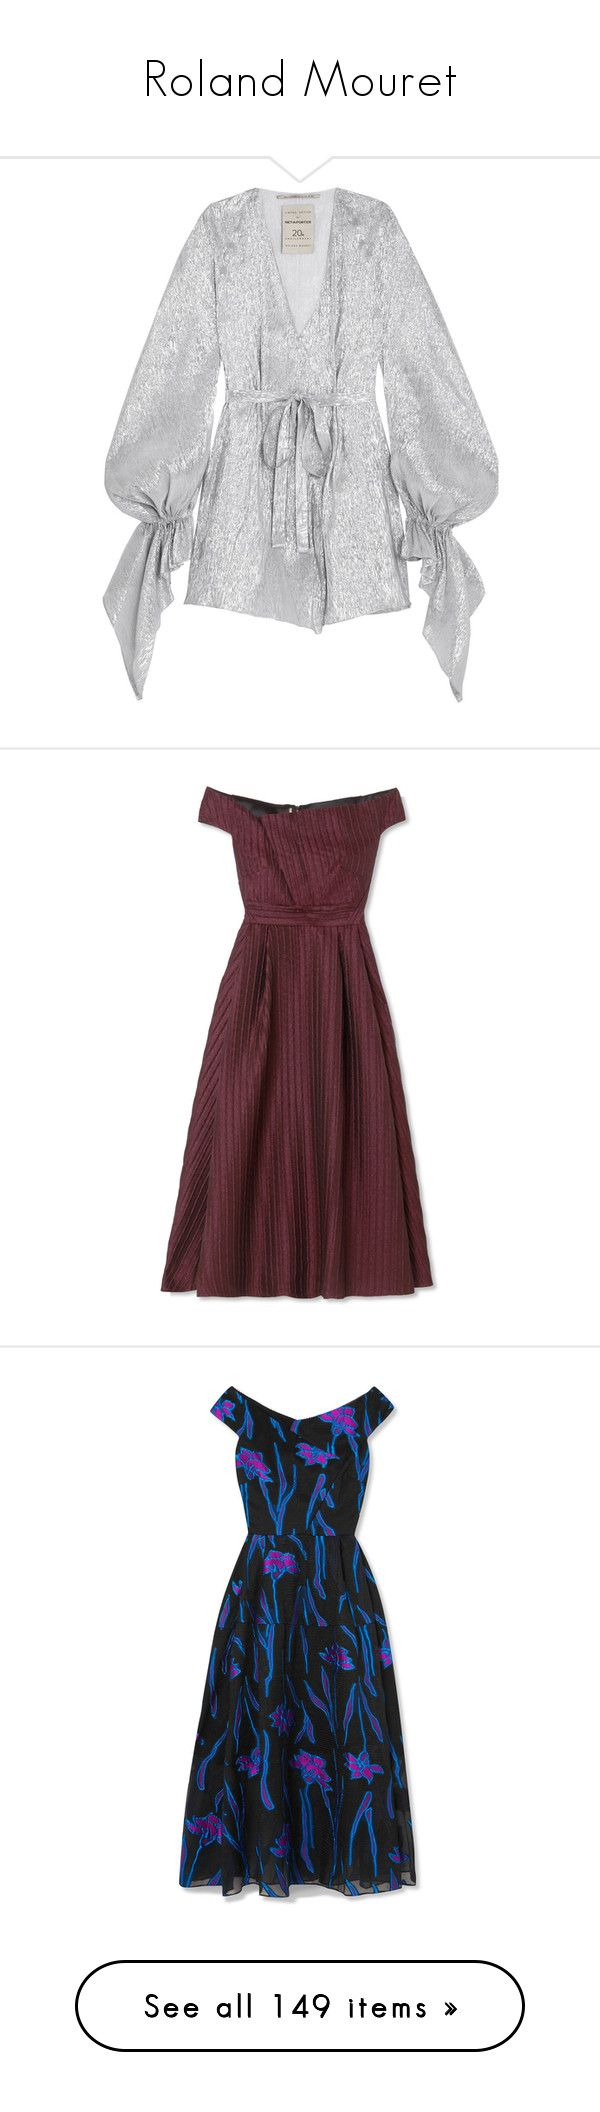 """""""Roland Mouret"""" by shoppings9 ❤ liked on Polyvore featuring dresses, metallic party dress, short party dresses, long-sleeve mini dress, sleeved dresses, going out dresses, red holiday cocktail dress, red evening dresses, evening cocktail dresses and cocktail dresses"""